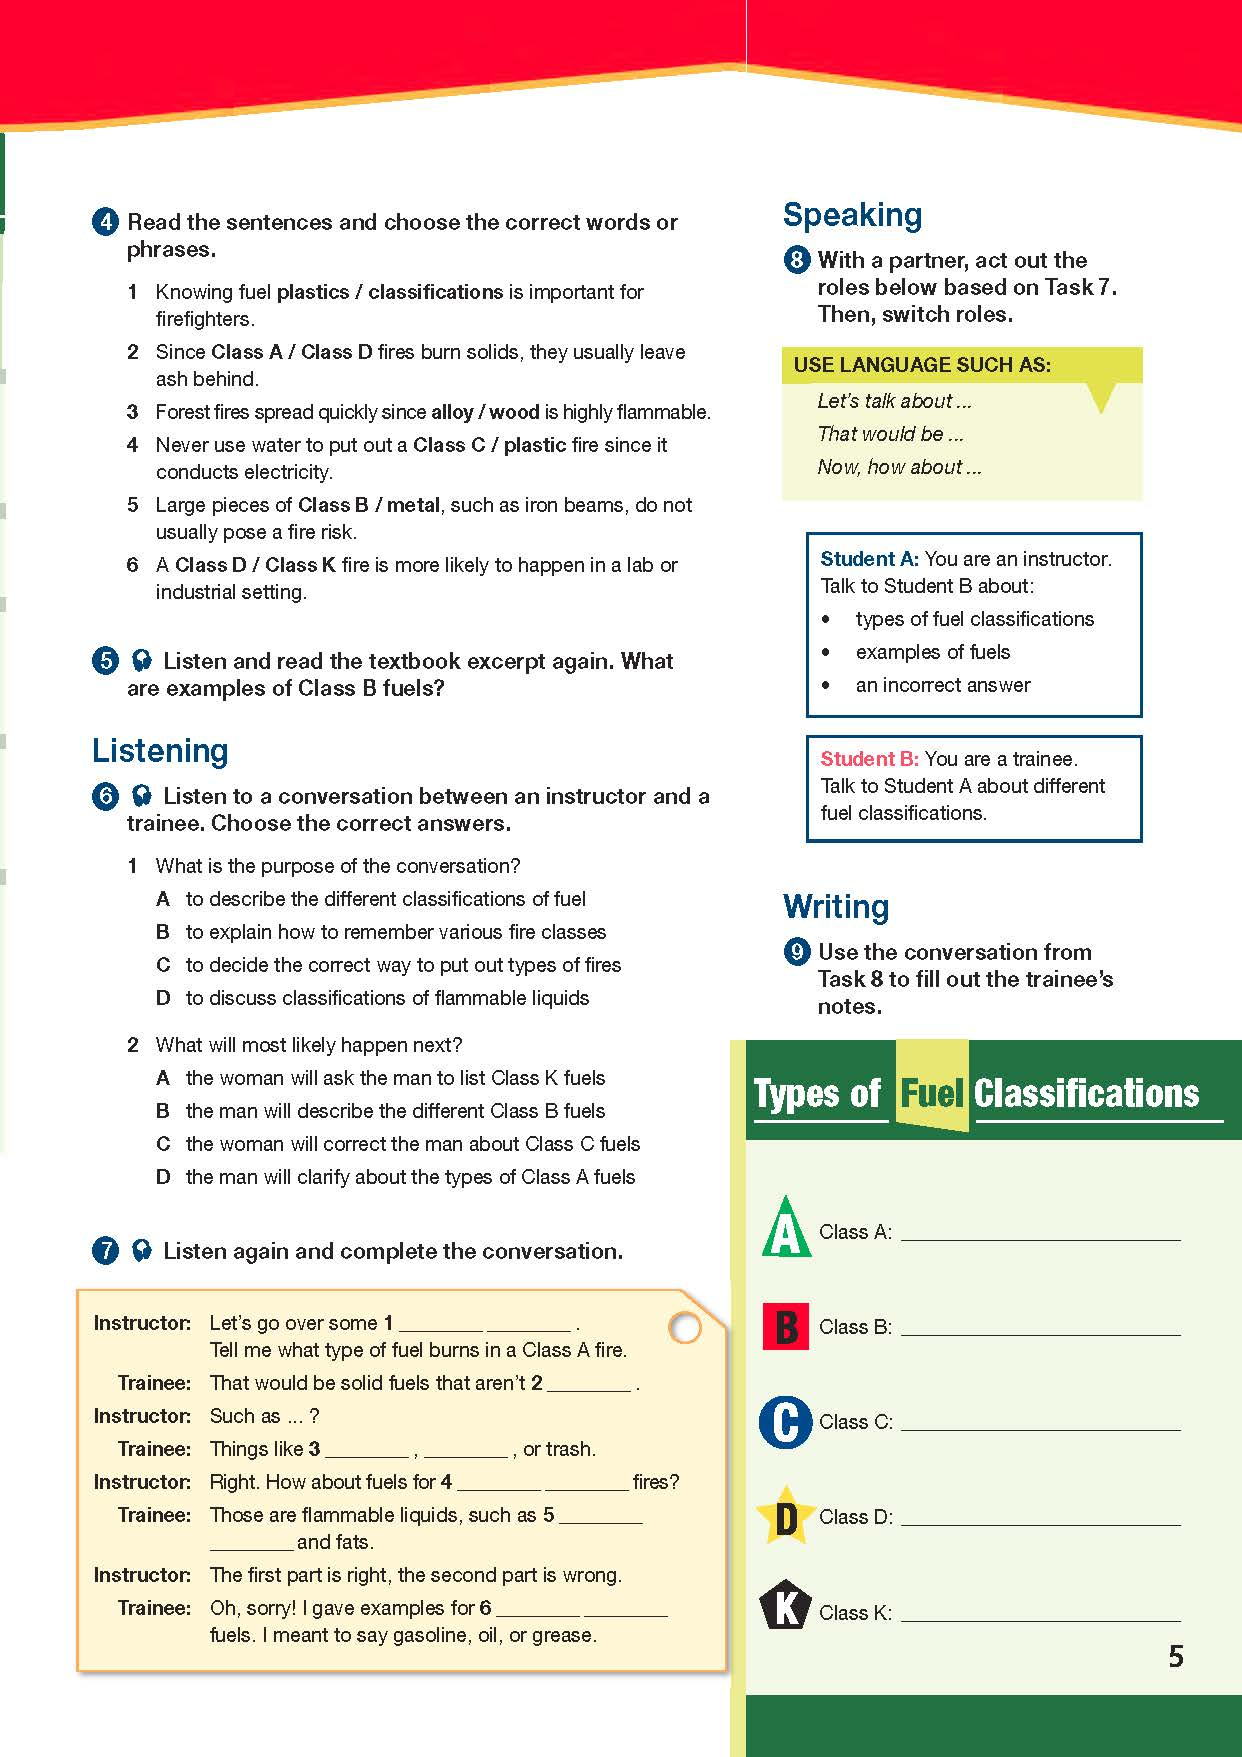 ESP English for Specific Purposes - Career Paths: Firefighters - Sample Page 4